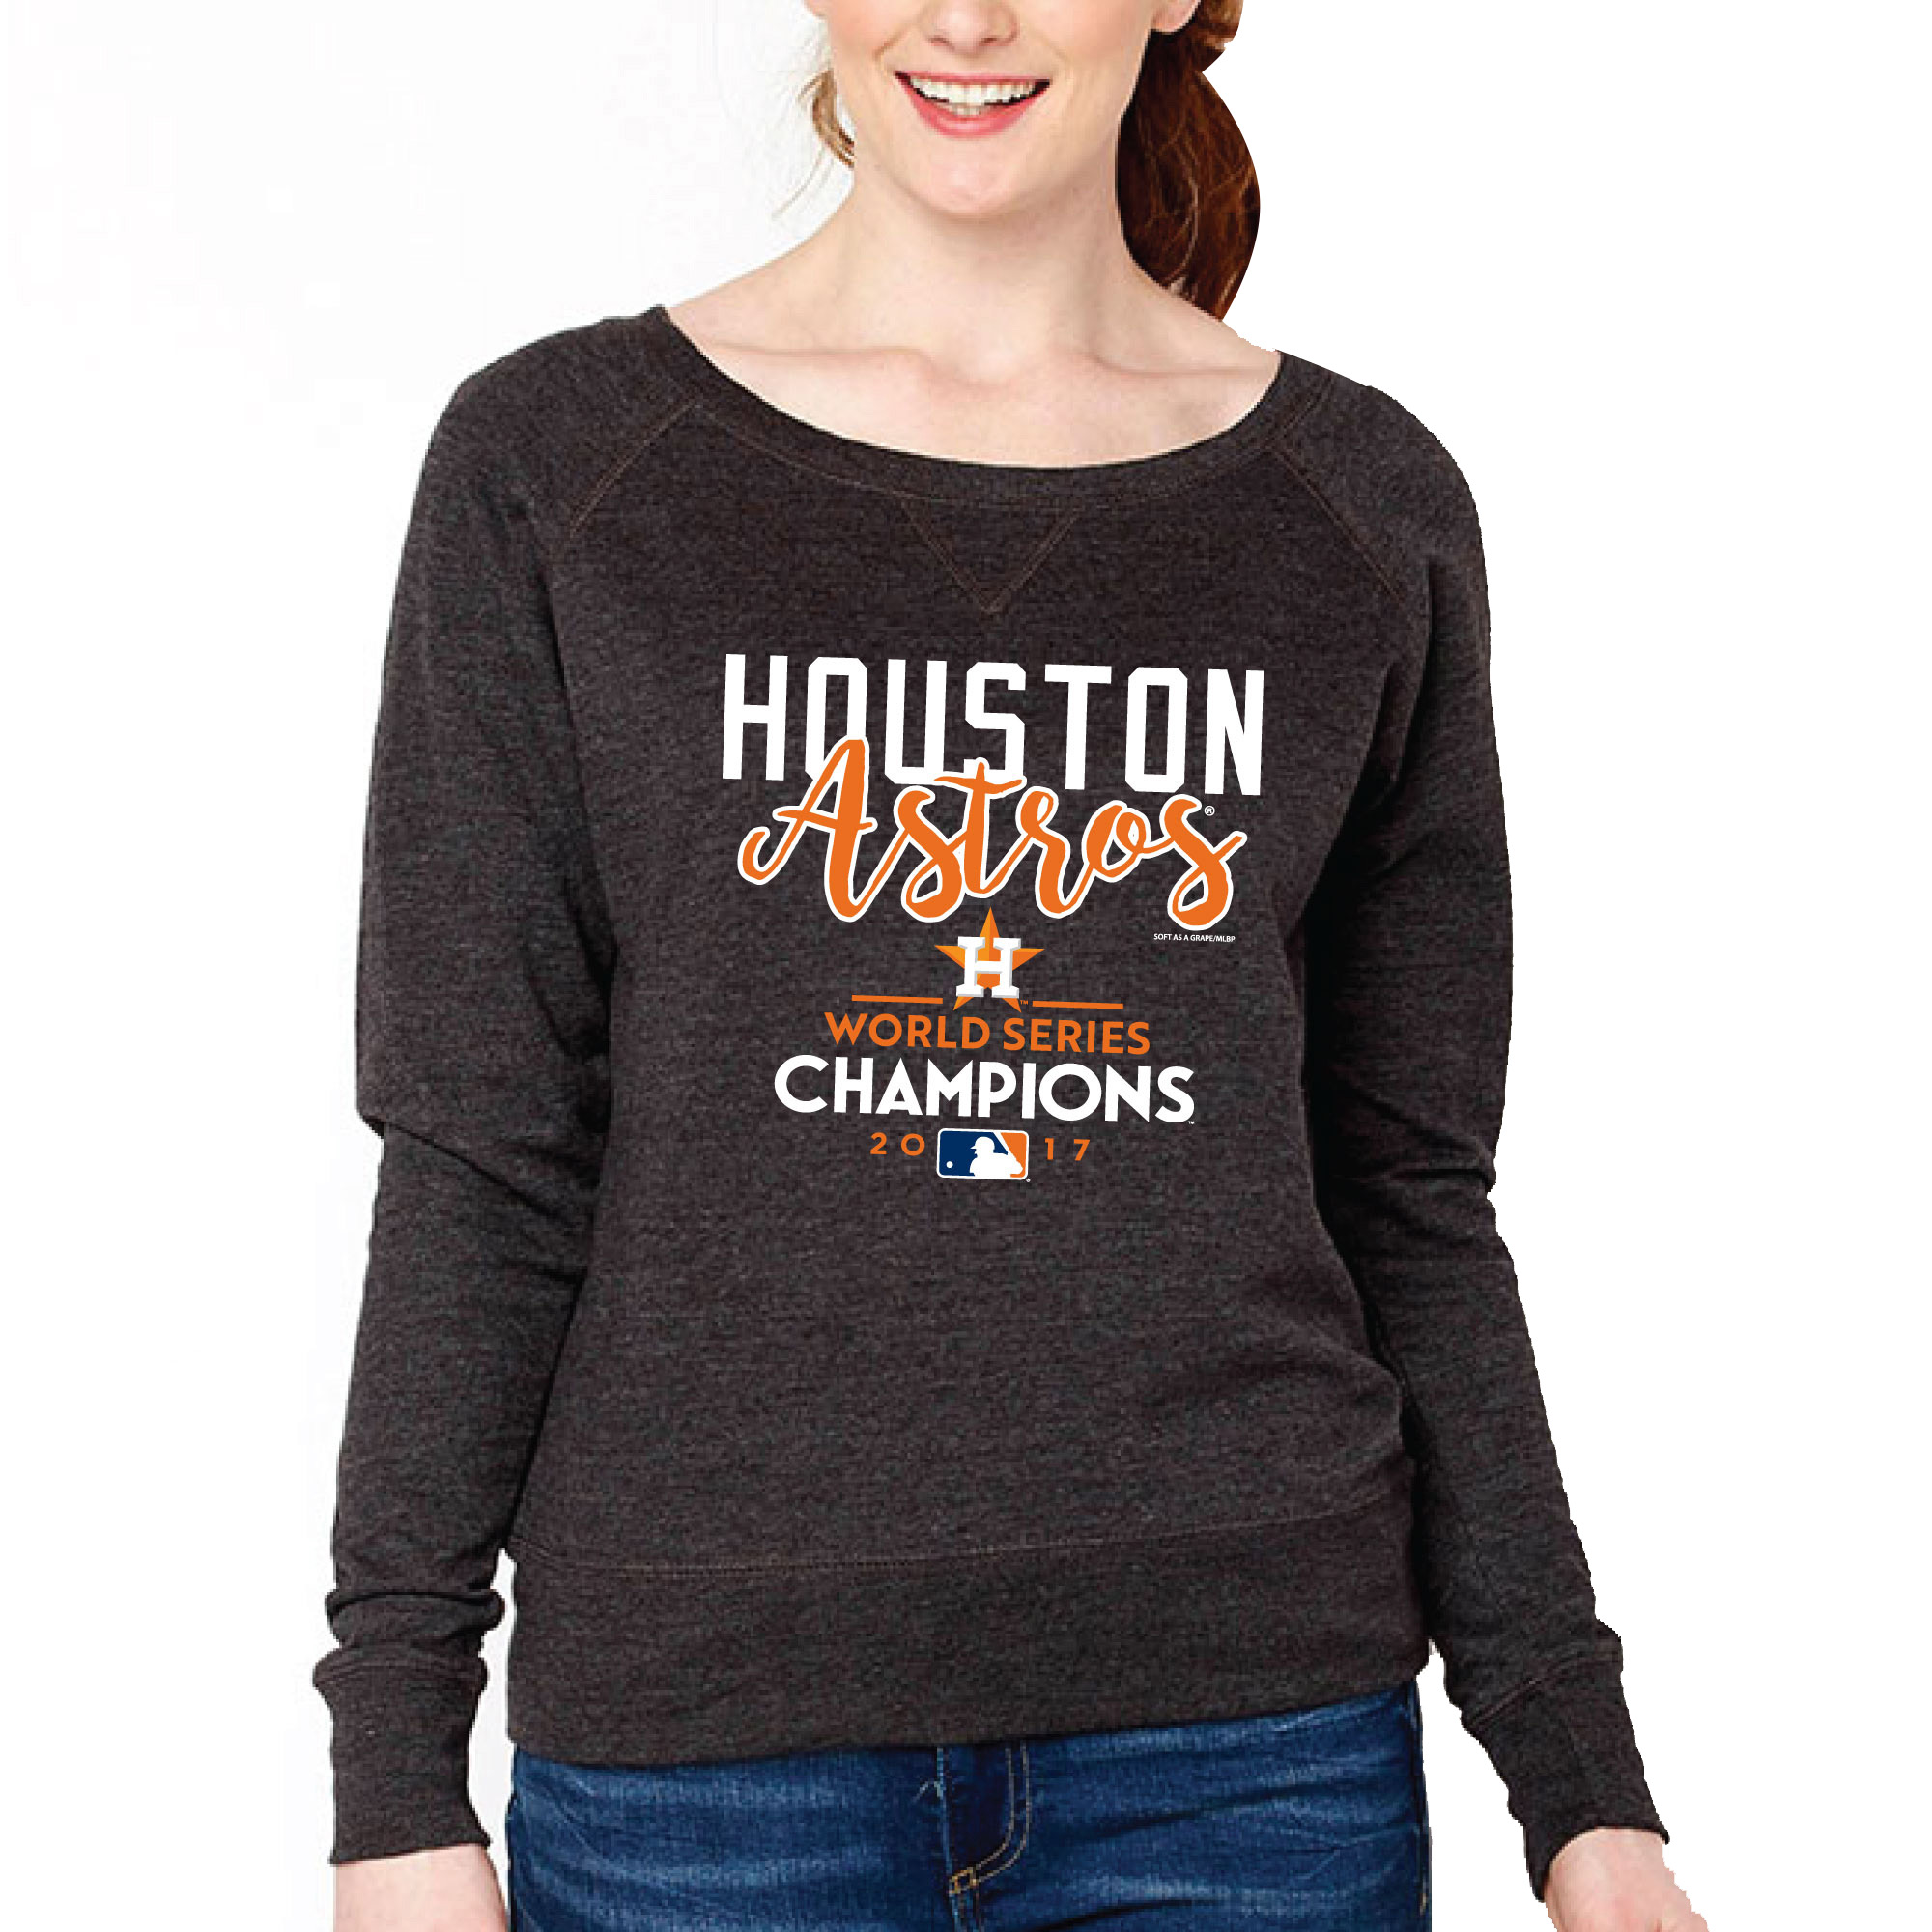 Houston Astros Soft as a Grape Women's 2017 World Series Champions Boatneck Pullover Sweatshirt - Charcoal